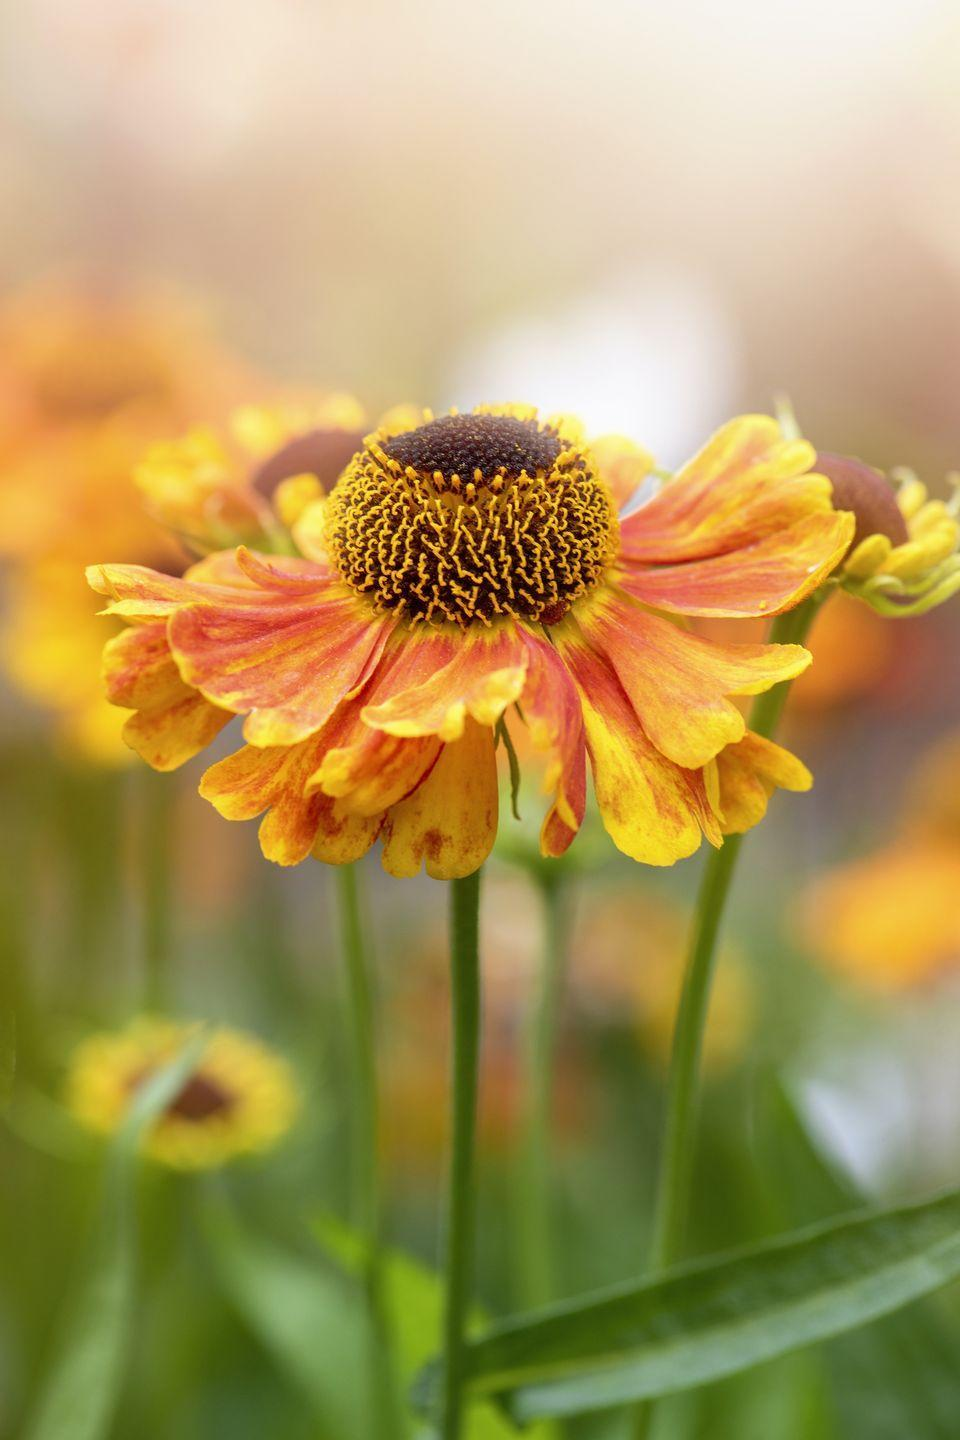 """<p>The beautiful blooms, also known as sneezeweeds, are perfect for adding glorious late-season colour to your landscape. As well as bringing a burst of much-needed joy, they will offer a real haven for bees and butterflies alike. </p><p><a class=""""link rapid-noclick-resp"""" href=""""https://www.waitrosegarden.com/plants/_/helenium-sahins-early-flowerer/classid.2000013972/"""" rel=""""nofollow noopener"""" target=""""_blank"""" data-ylk=""""slk:BUY NOW VIA WAITROSE GARDEN"""">BUY NOW VIA WAITROSE GARDEN</a></p>"""